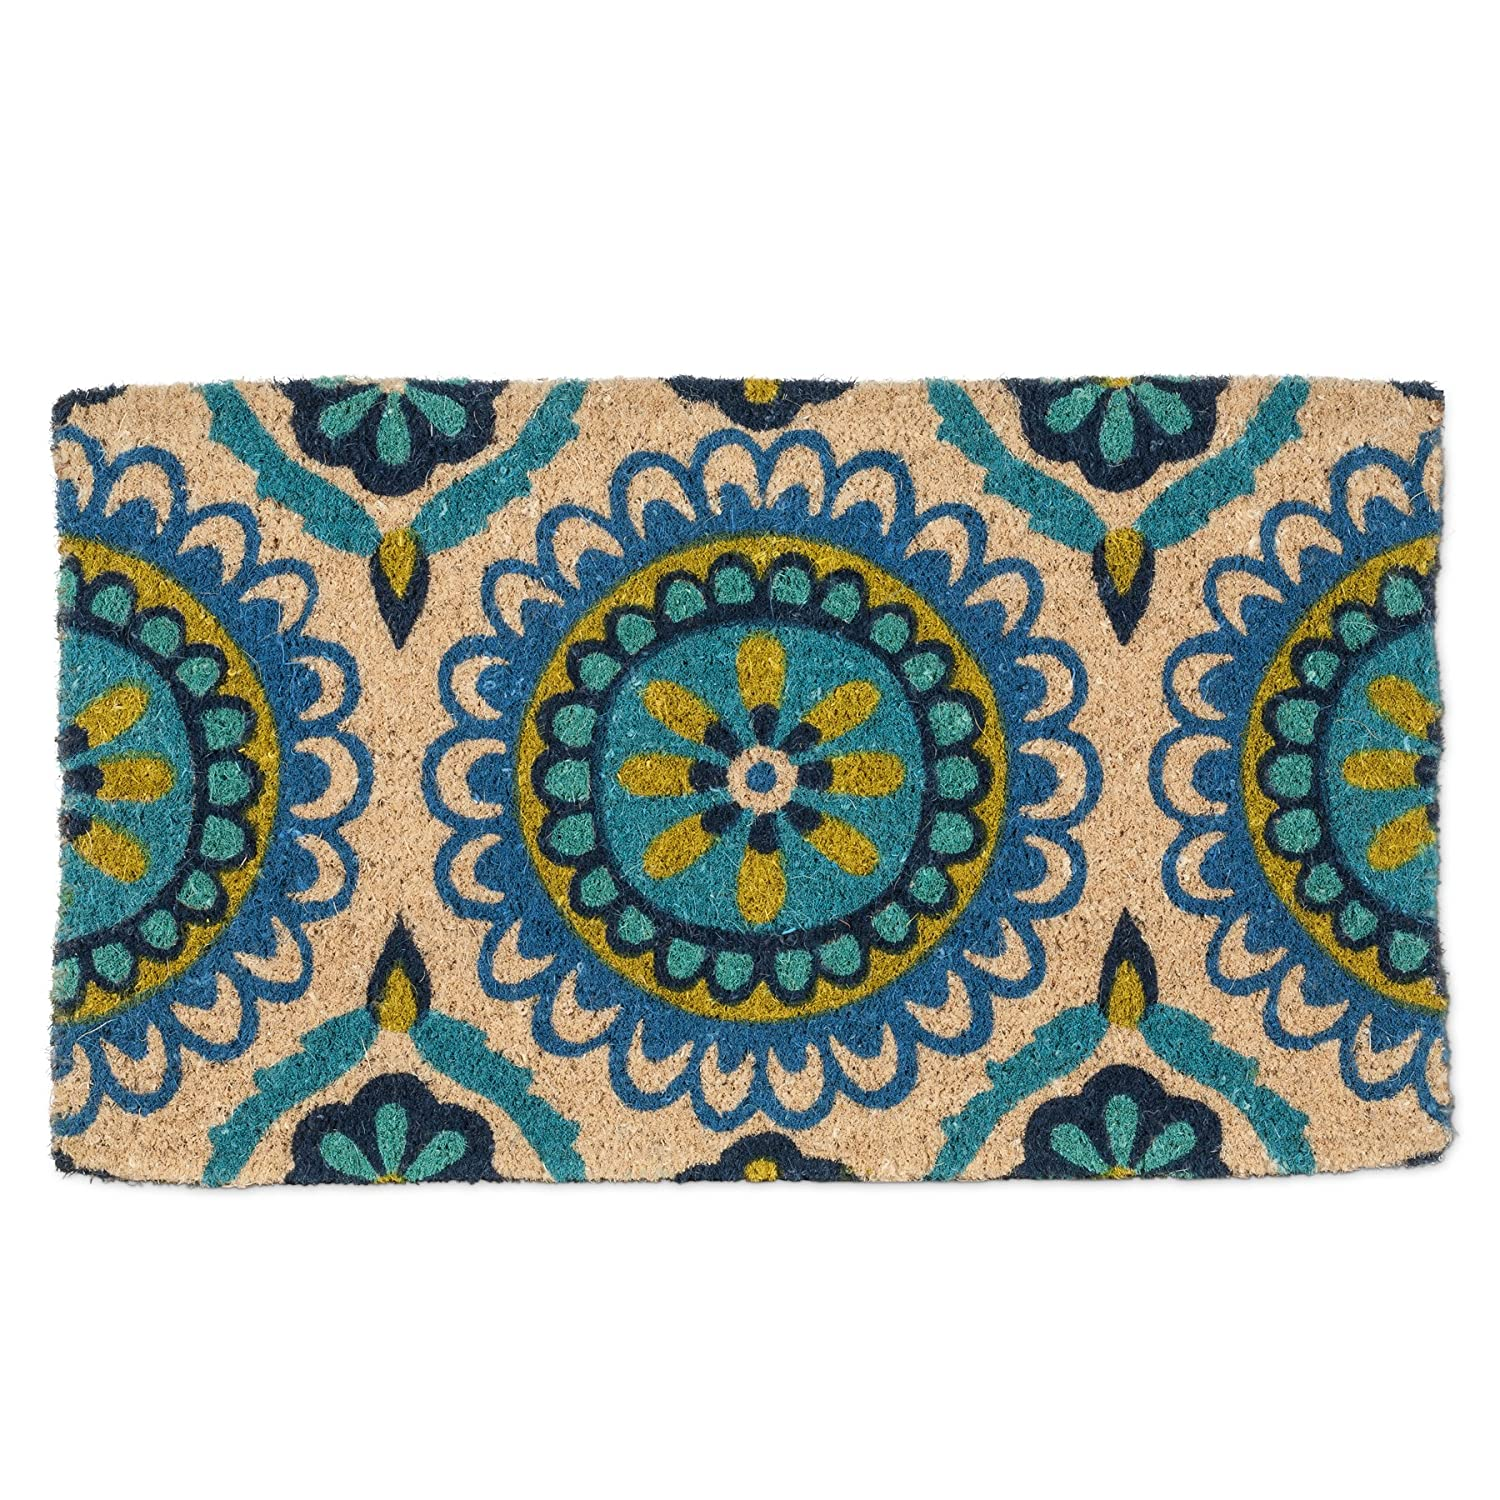 bluee and Green Tile Abbott Coco Palm Fibre Doormat